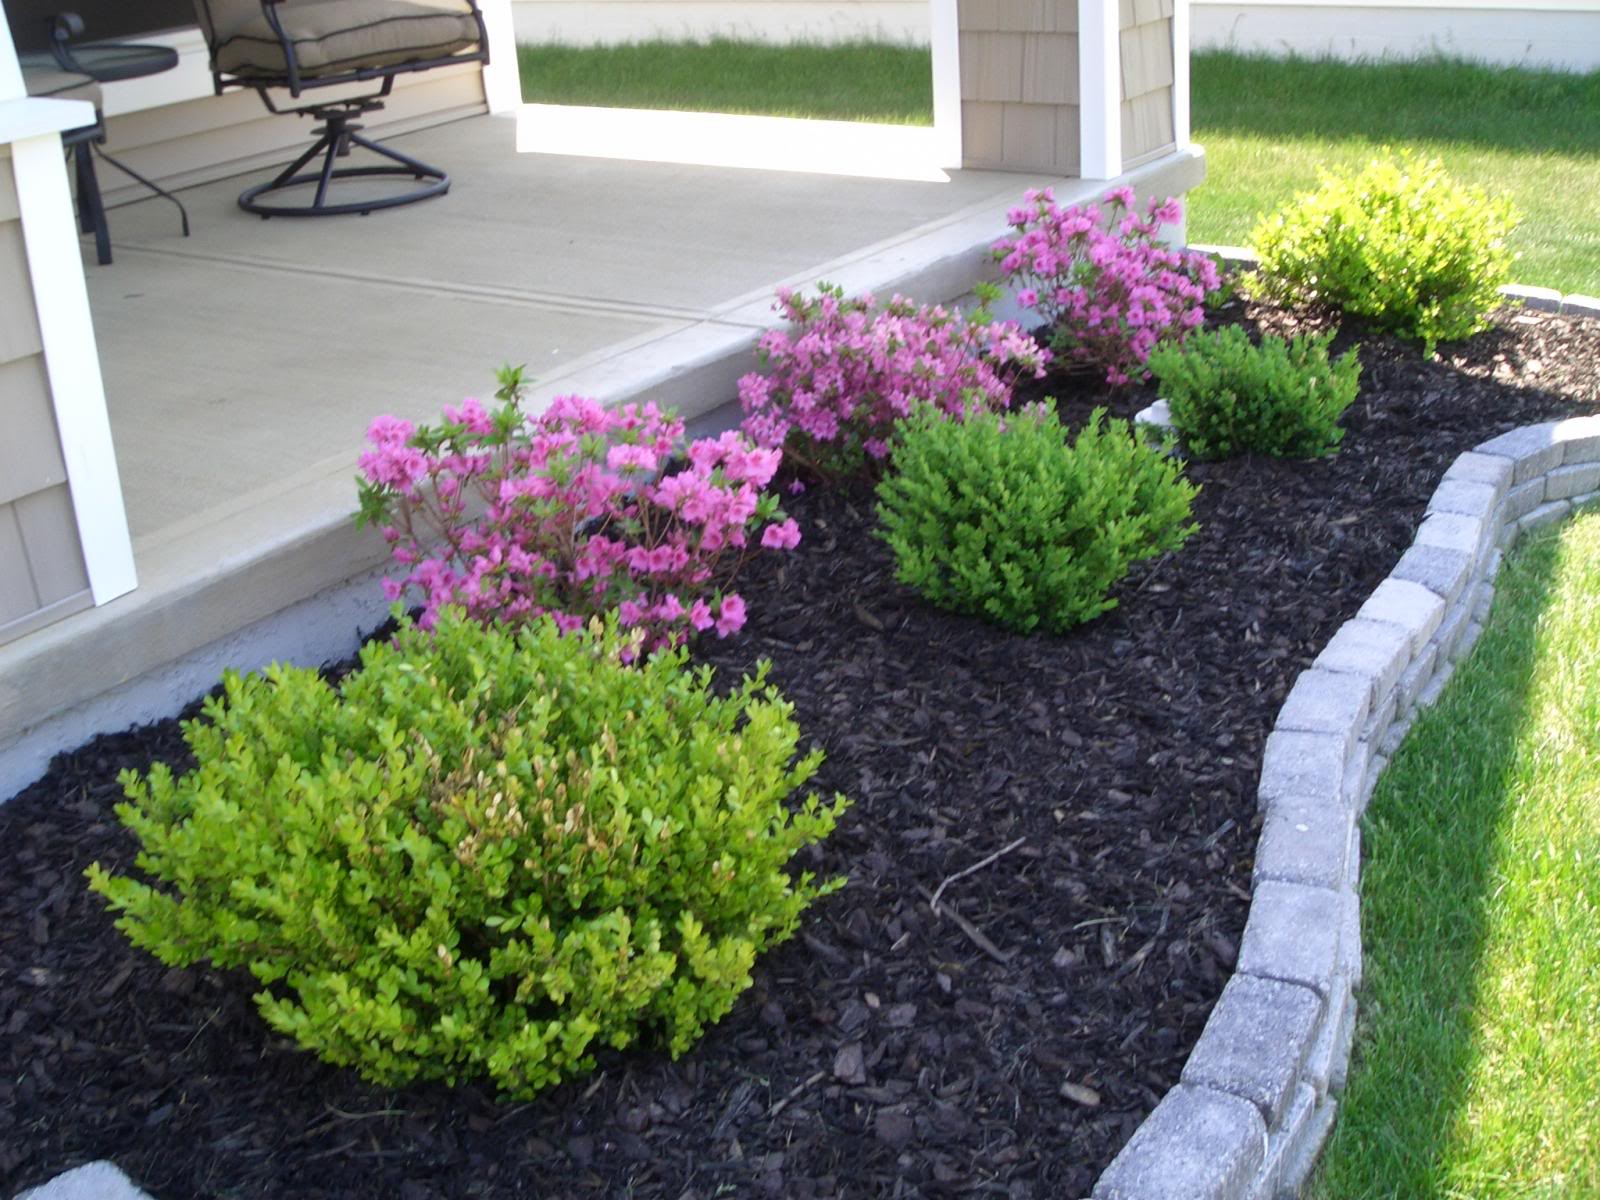 Landscaping landscape plants ideas for Lawn and garden ideas